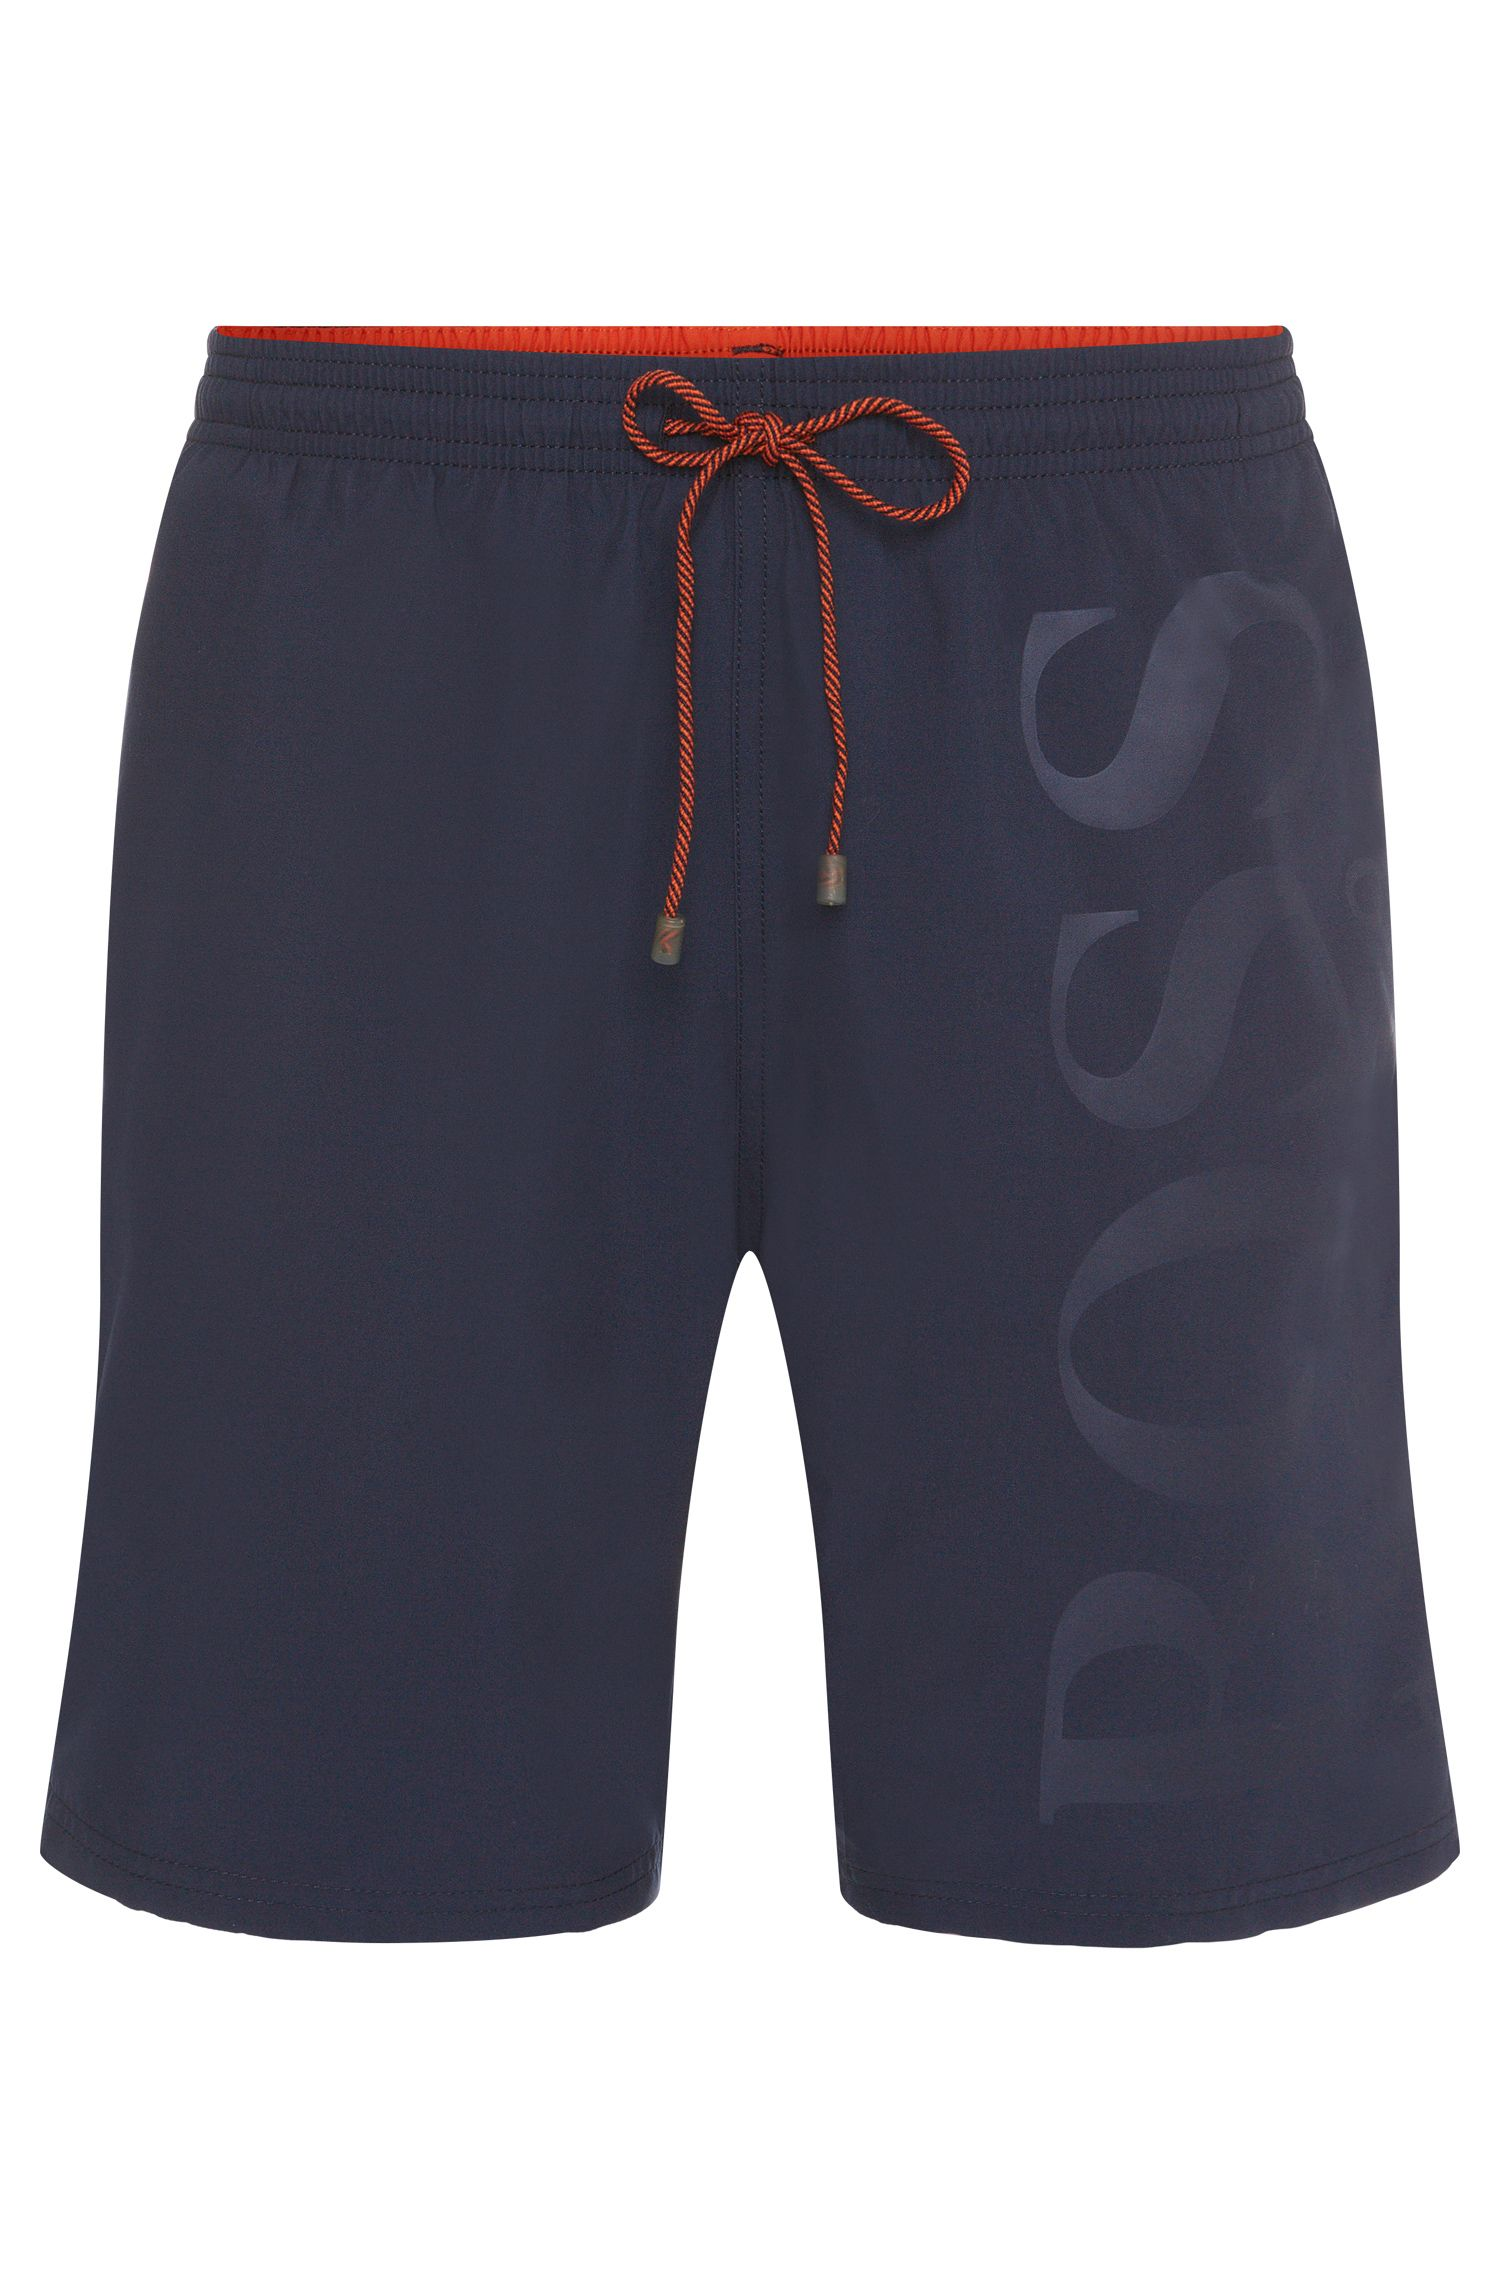 'Orca' | BOSS Logo Swim Trunks